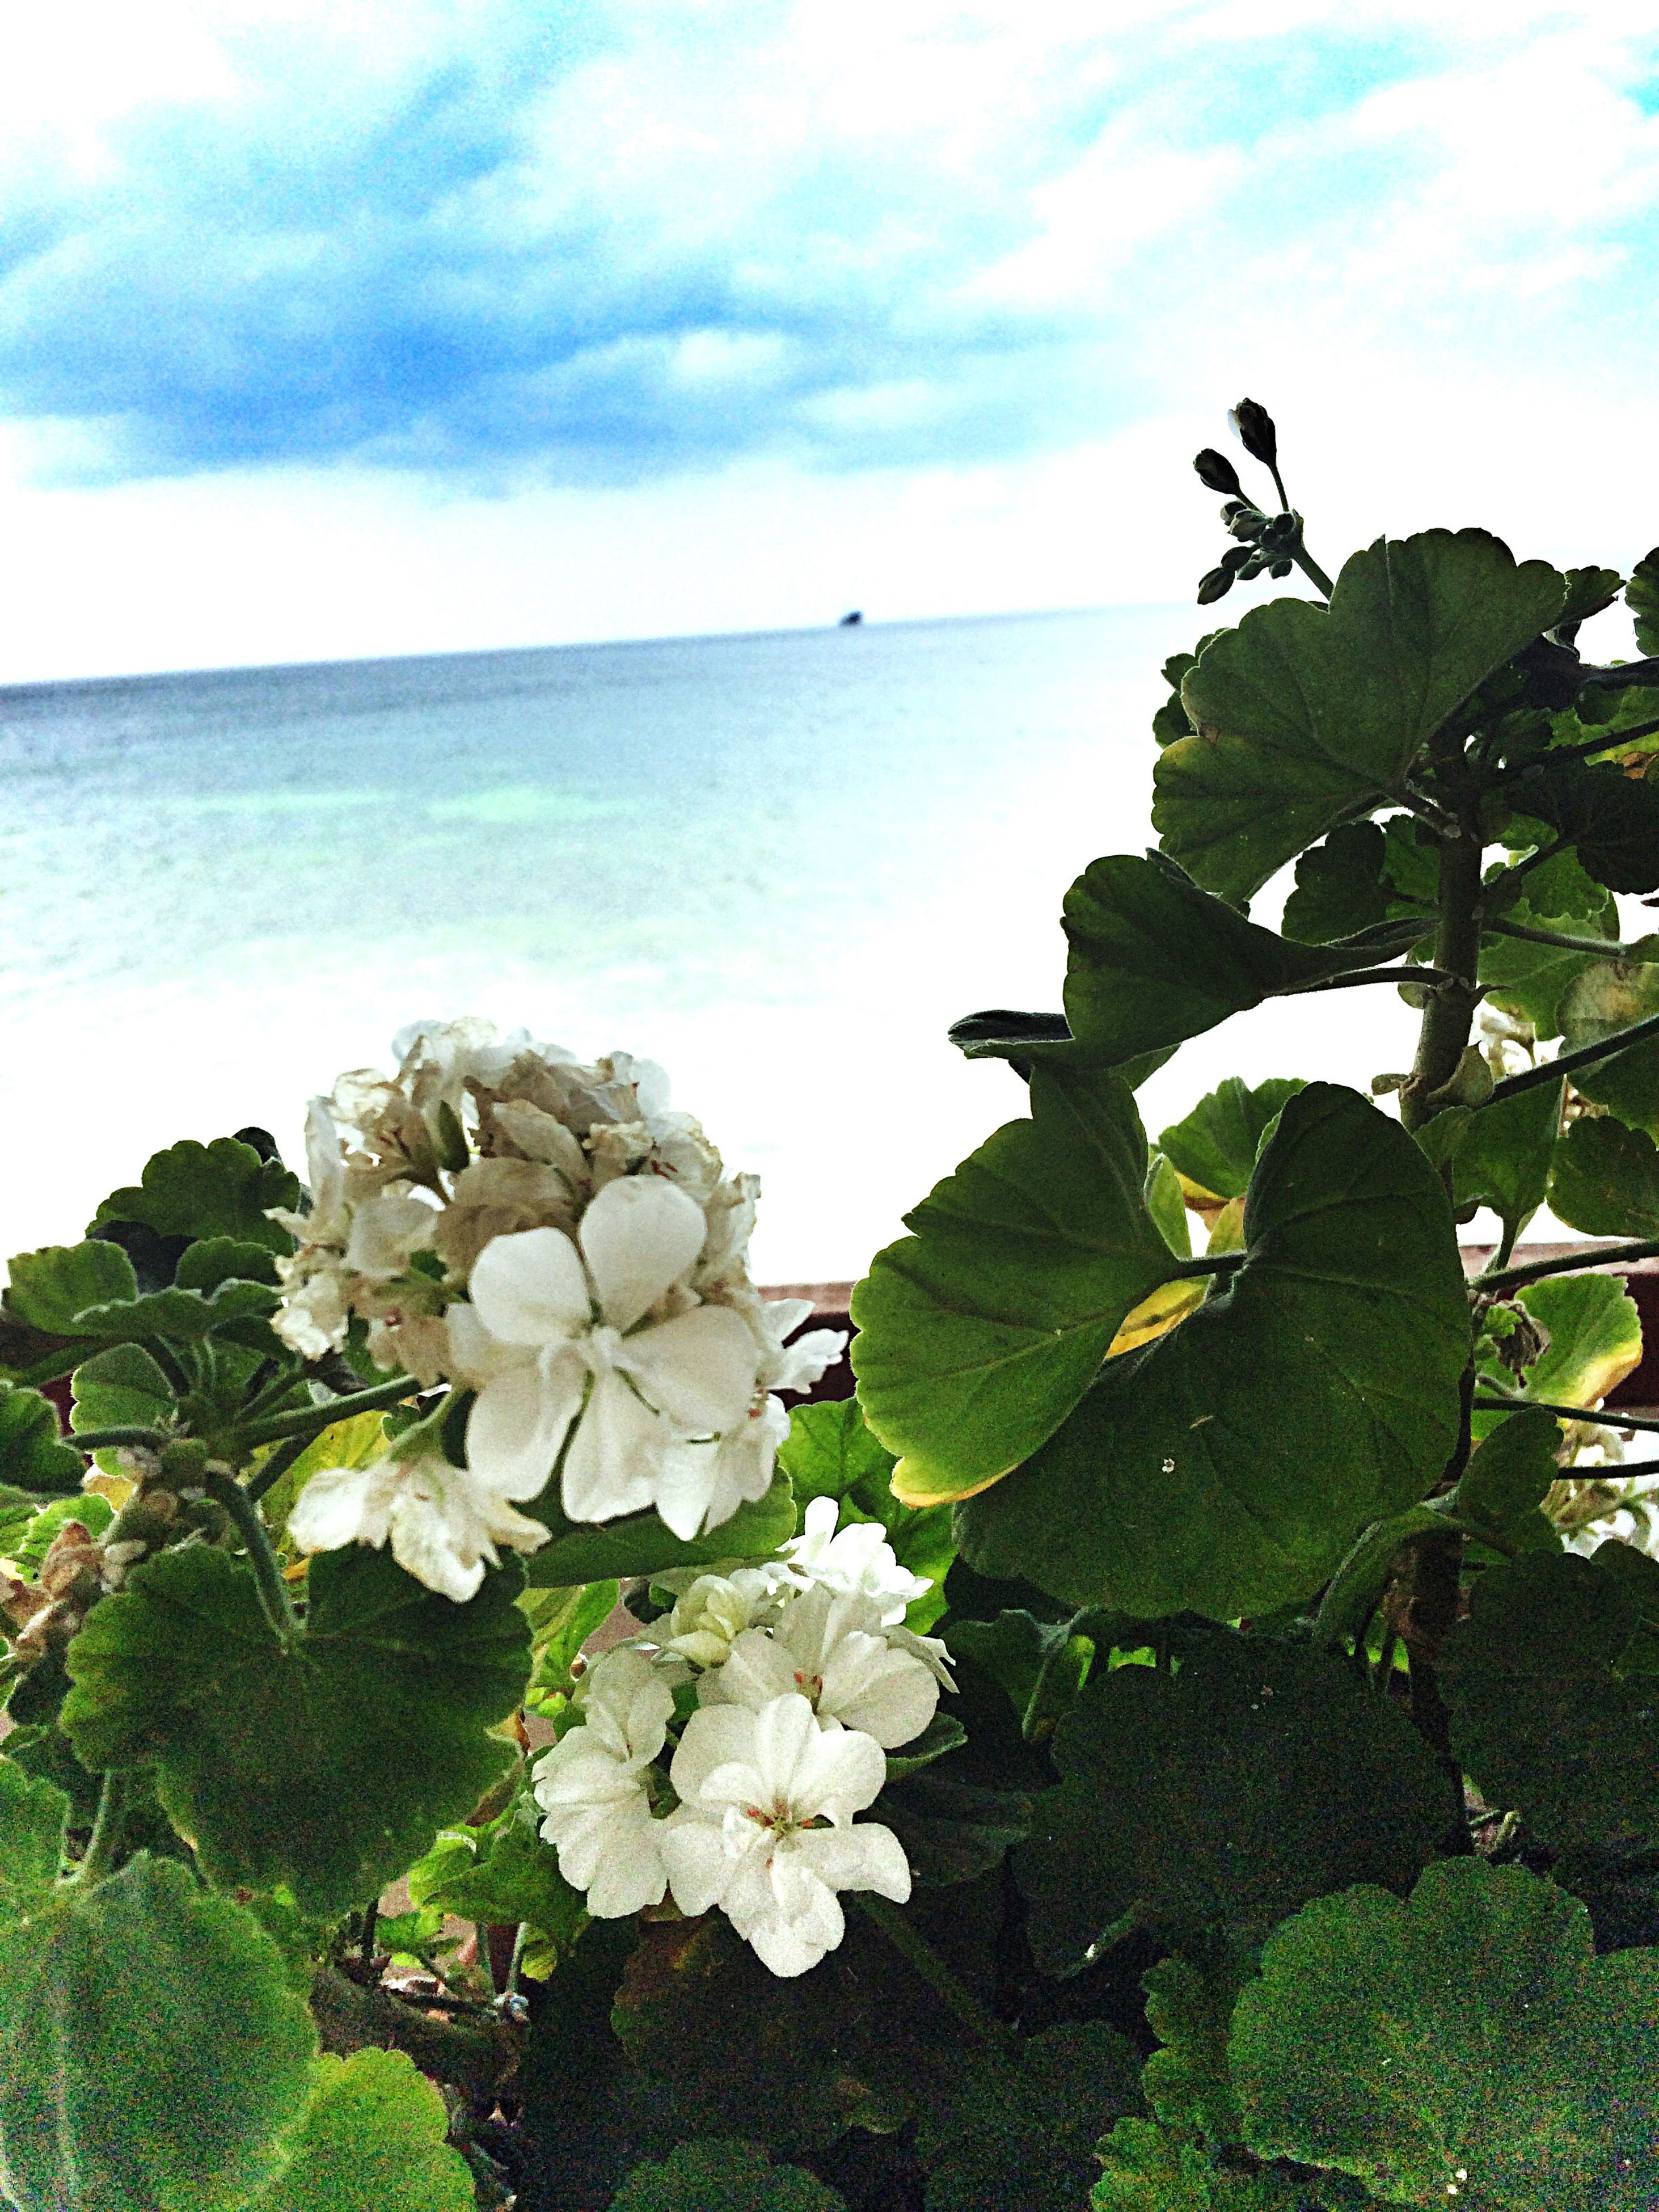 sea, horizon over water, water, flower, beauty in nature, tranquil scene, scenics, tranquility, fragility, sky, petal, nature, rock - object, shore, cloud - sky, cloud, bunch of flowers, non-urban scene, rocky, day, outdoors, tourism, in bloom, freshness, vacations, no people, flower head, remote, rock formation